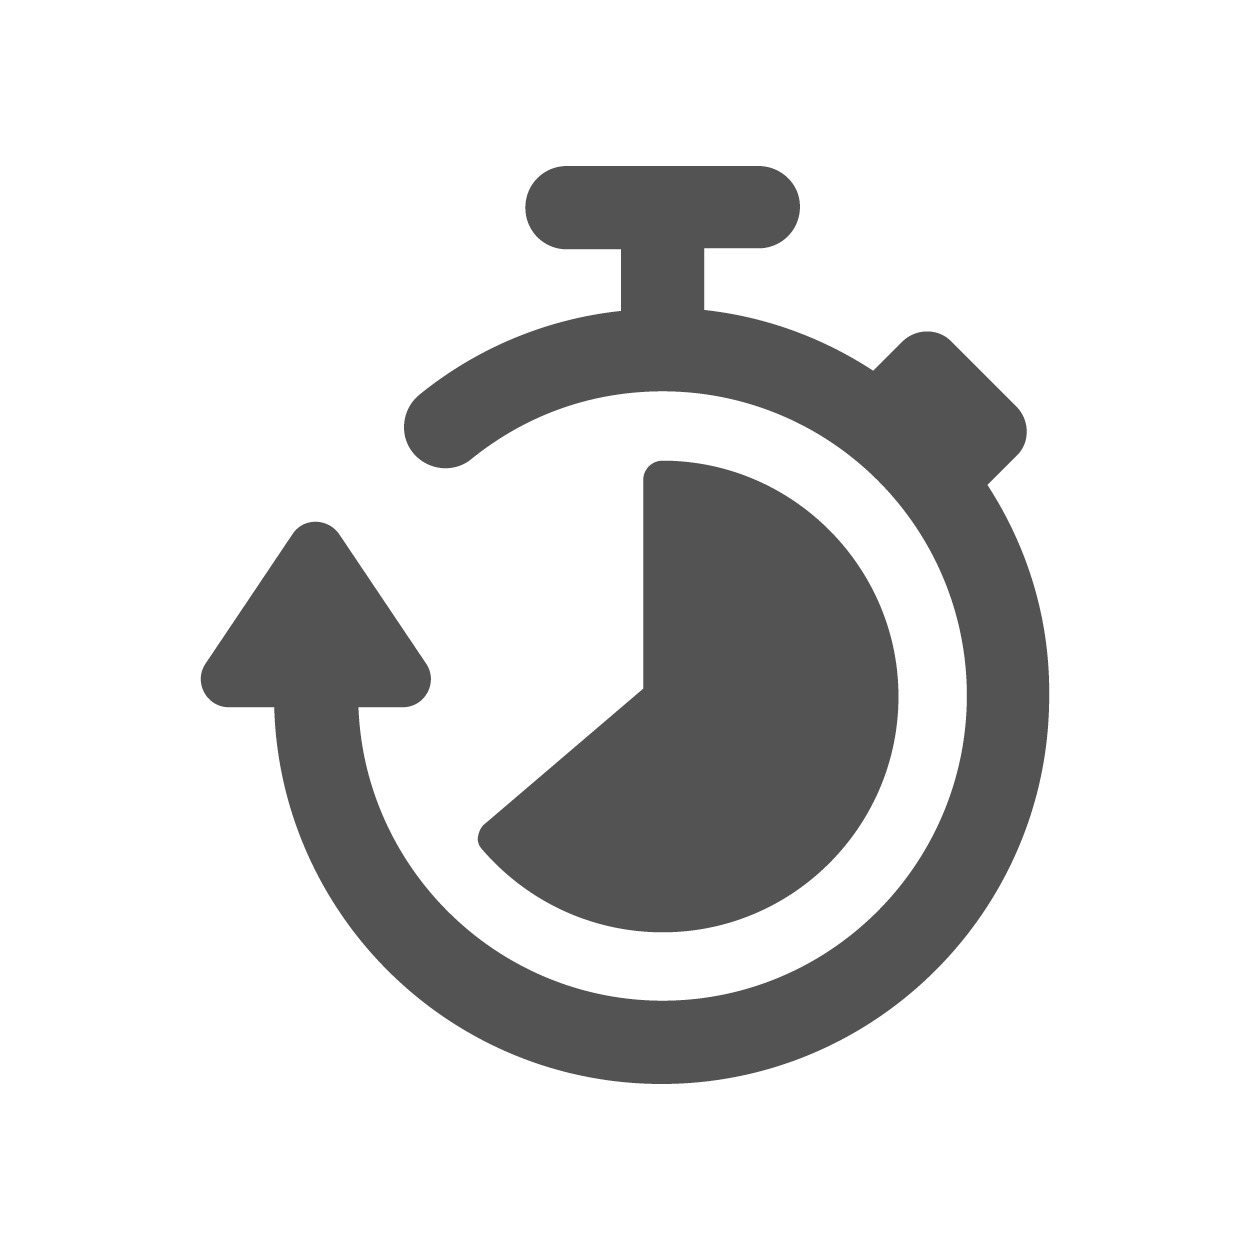 Graphic of clock by Adrien Coquet from the Noun Project